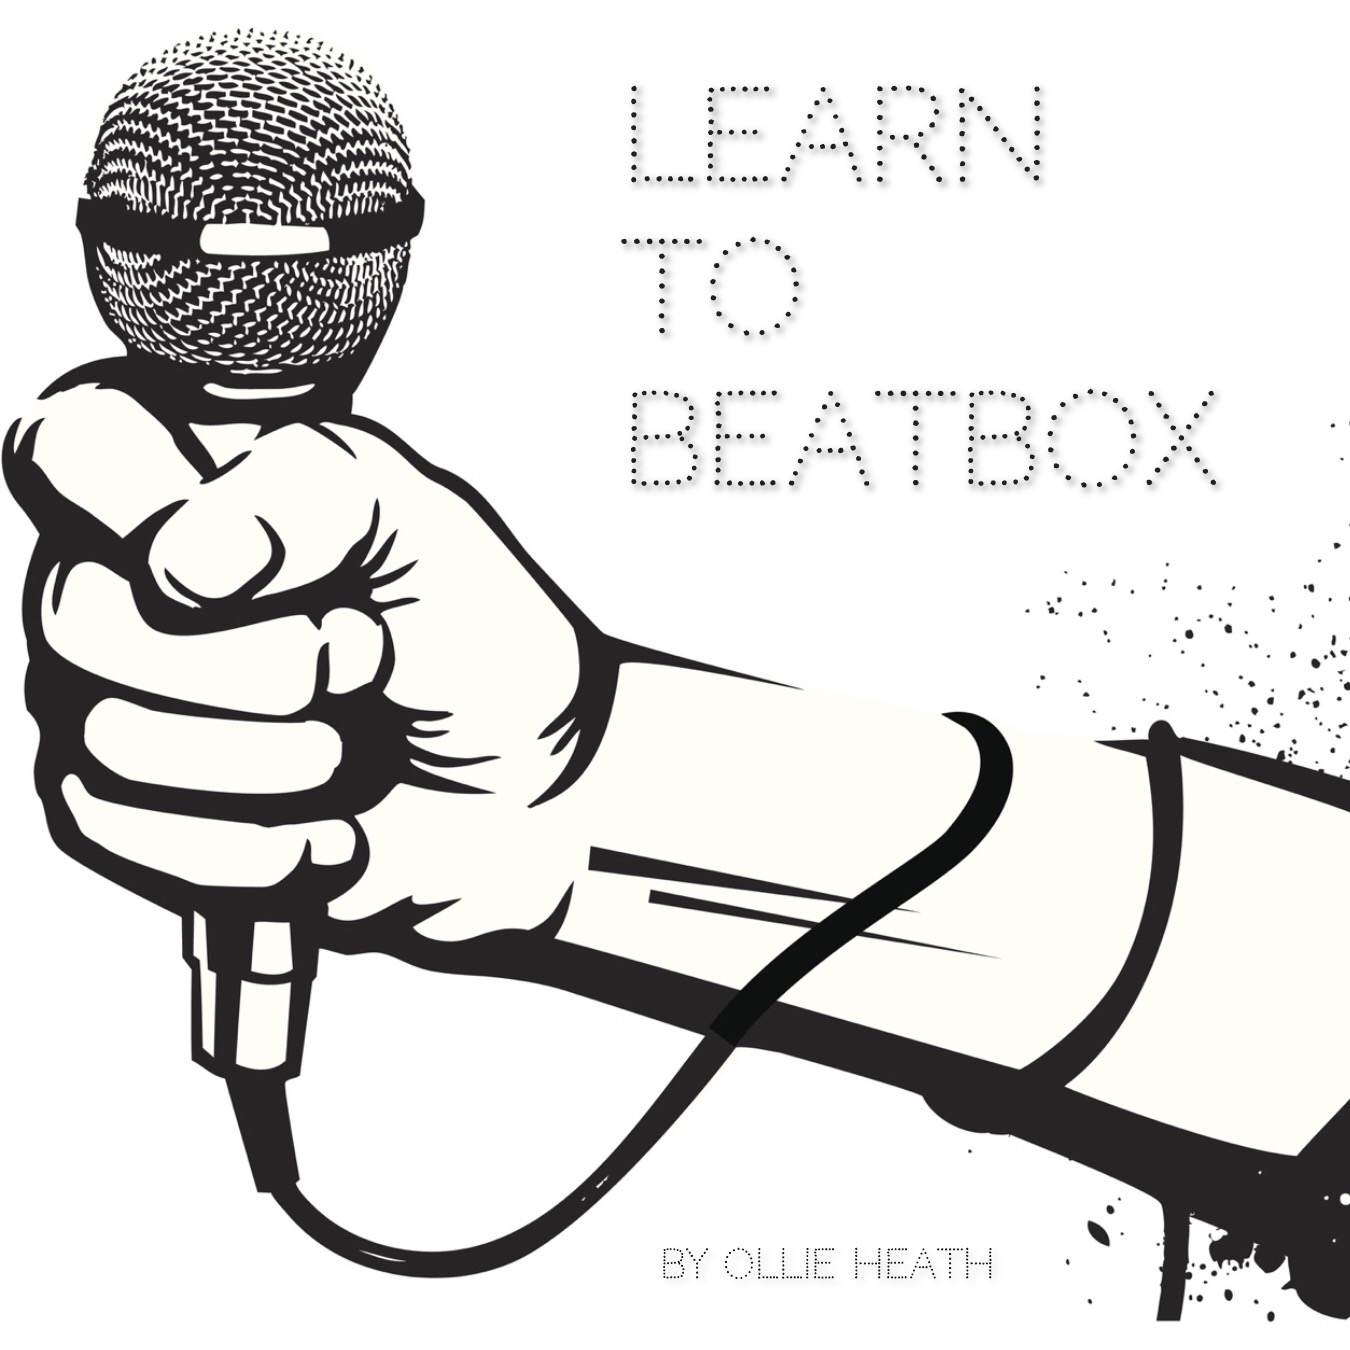 Fill out the form below to receive your FREE Beatbox Videos. - Thanks. Ollie